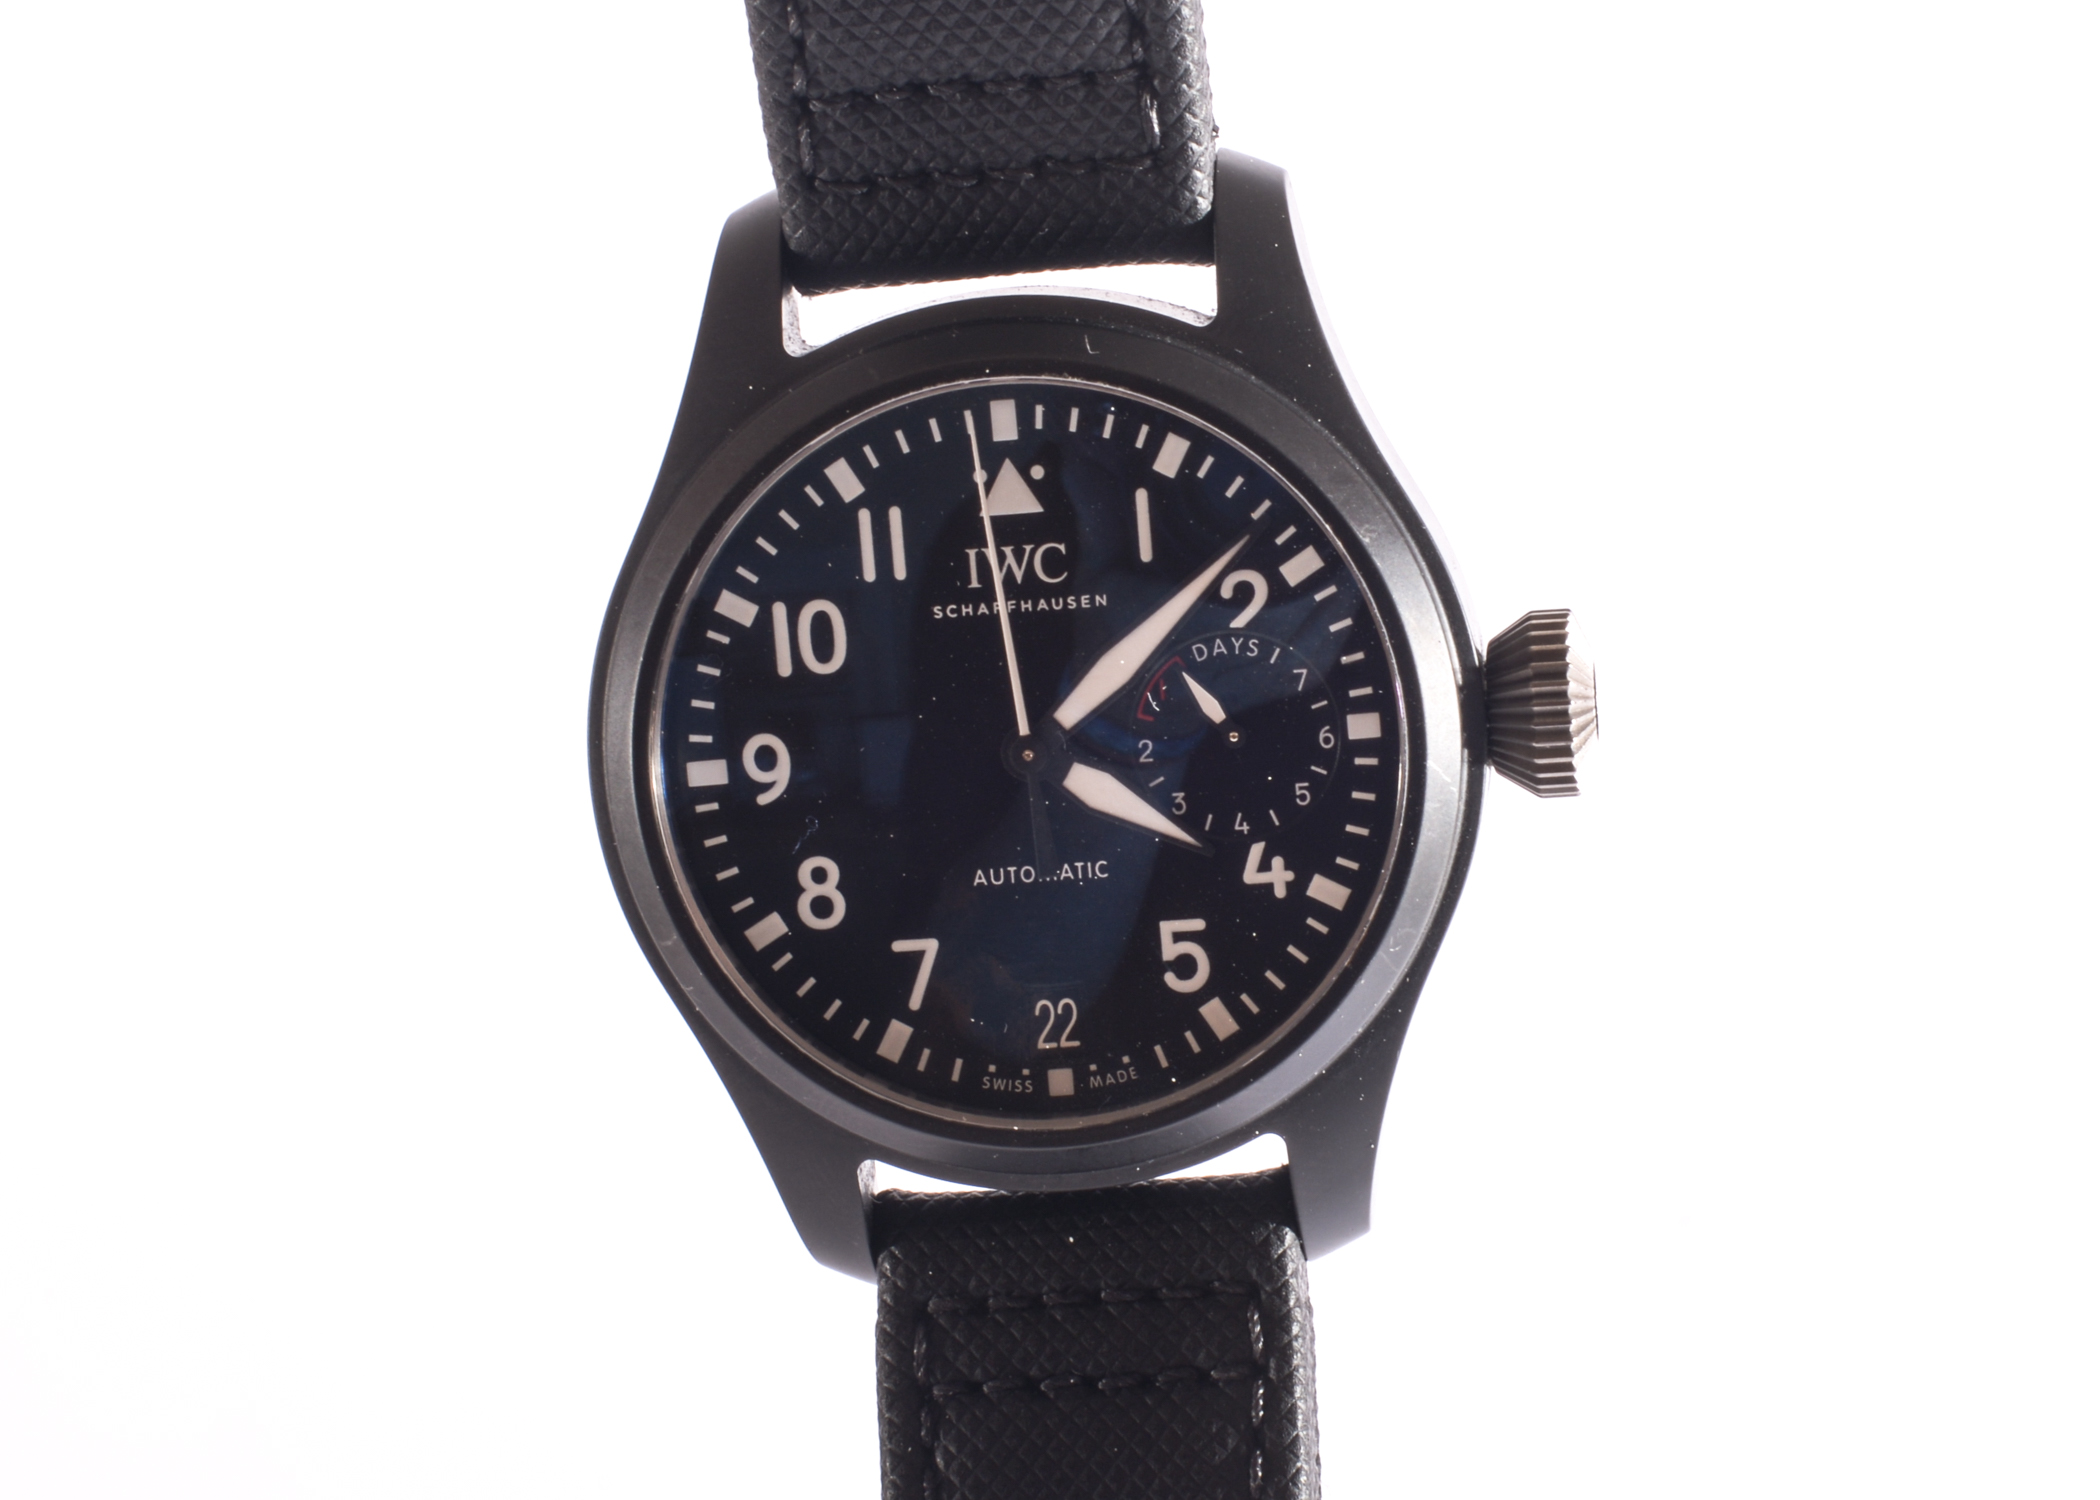 Lot 1 - An IWC SCHAFFHAUSEN Model IW502001 Big Pilots Watch. Top Gun Wrist Watch with Black Ceramic Case &